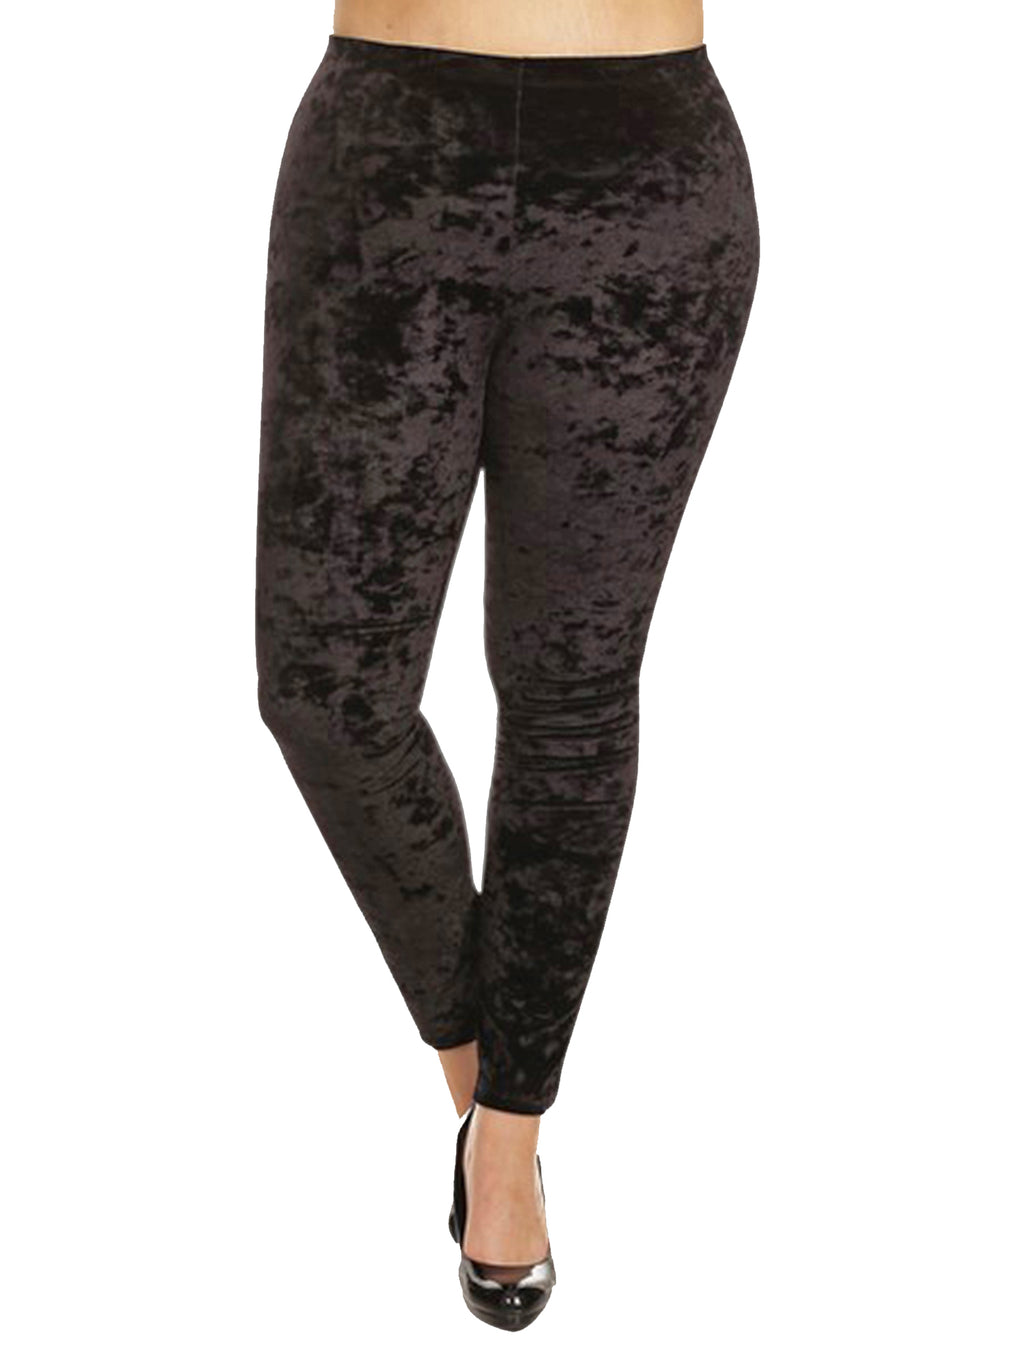 Black Crushed Velvet Plus Size Leggings